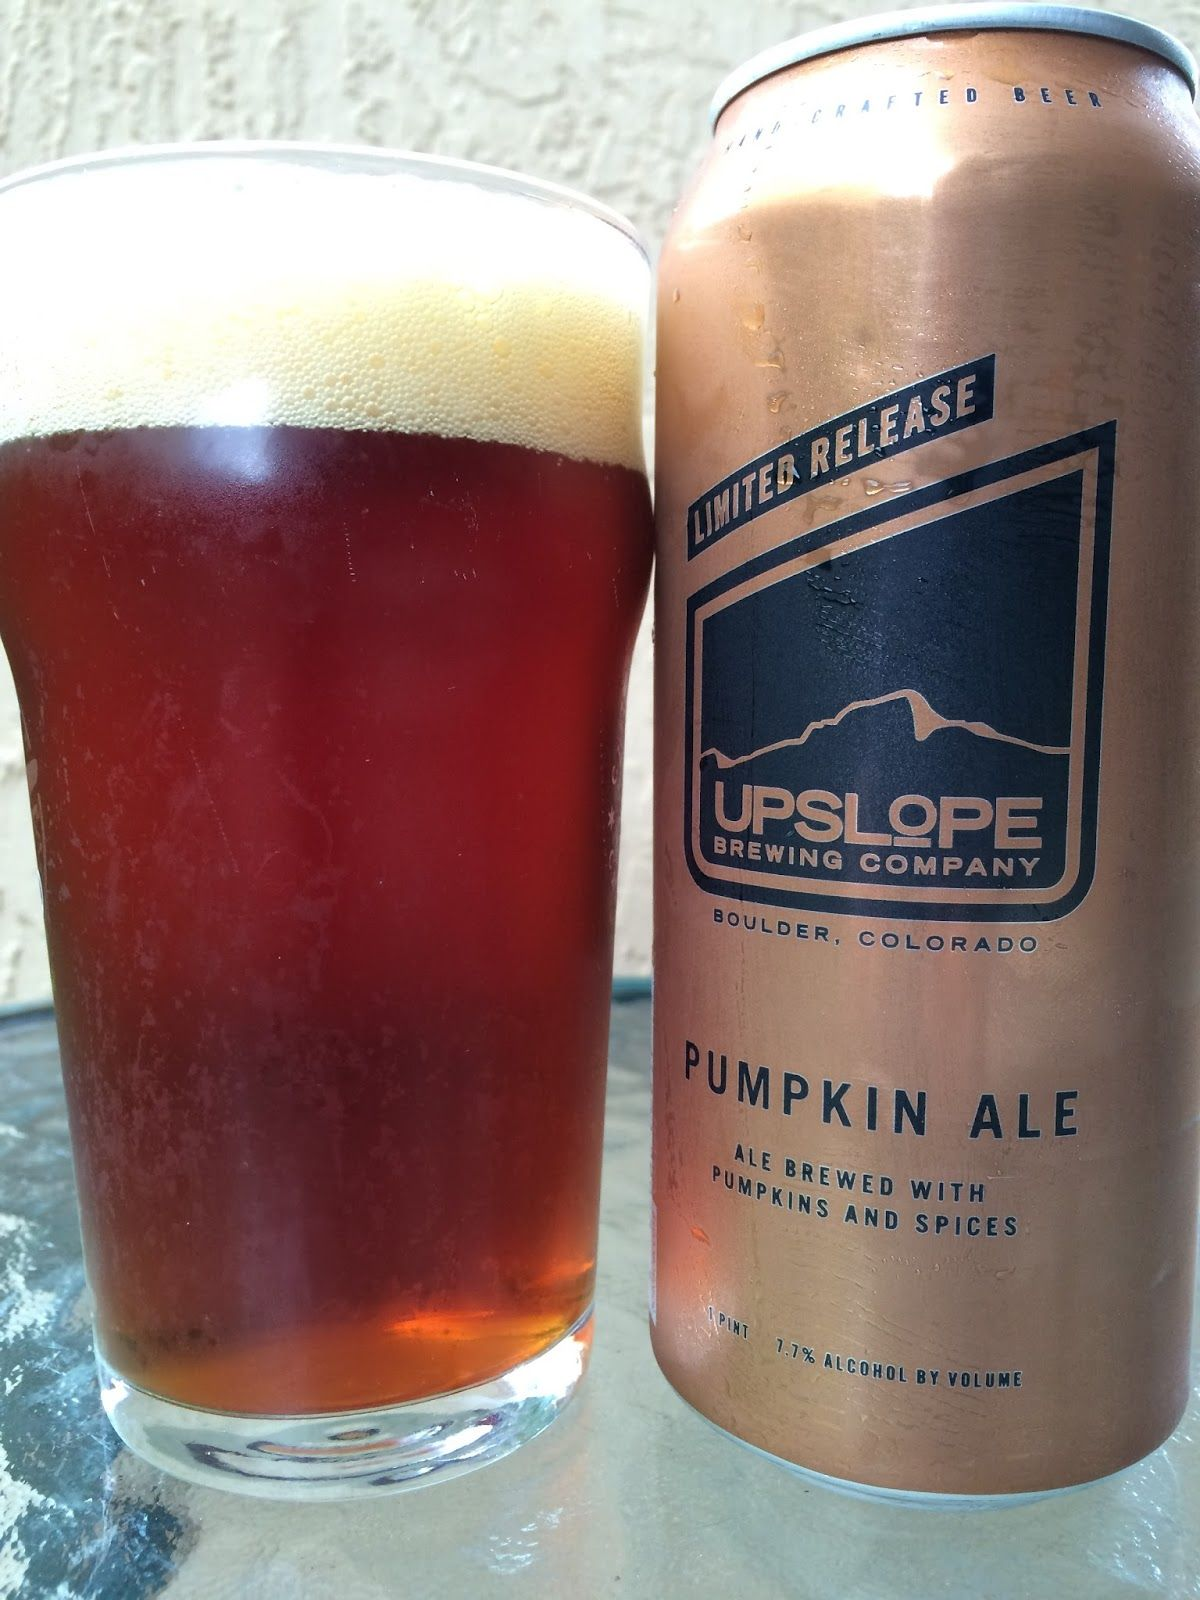 Beer Specials Daily Beer Review Upslope Pumpkin Ale Spirits Pinterest